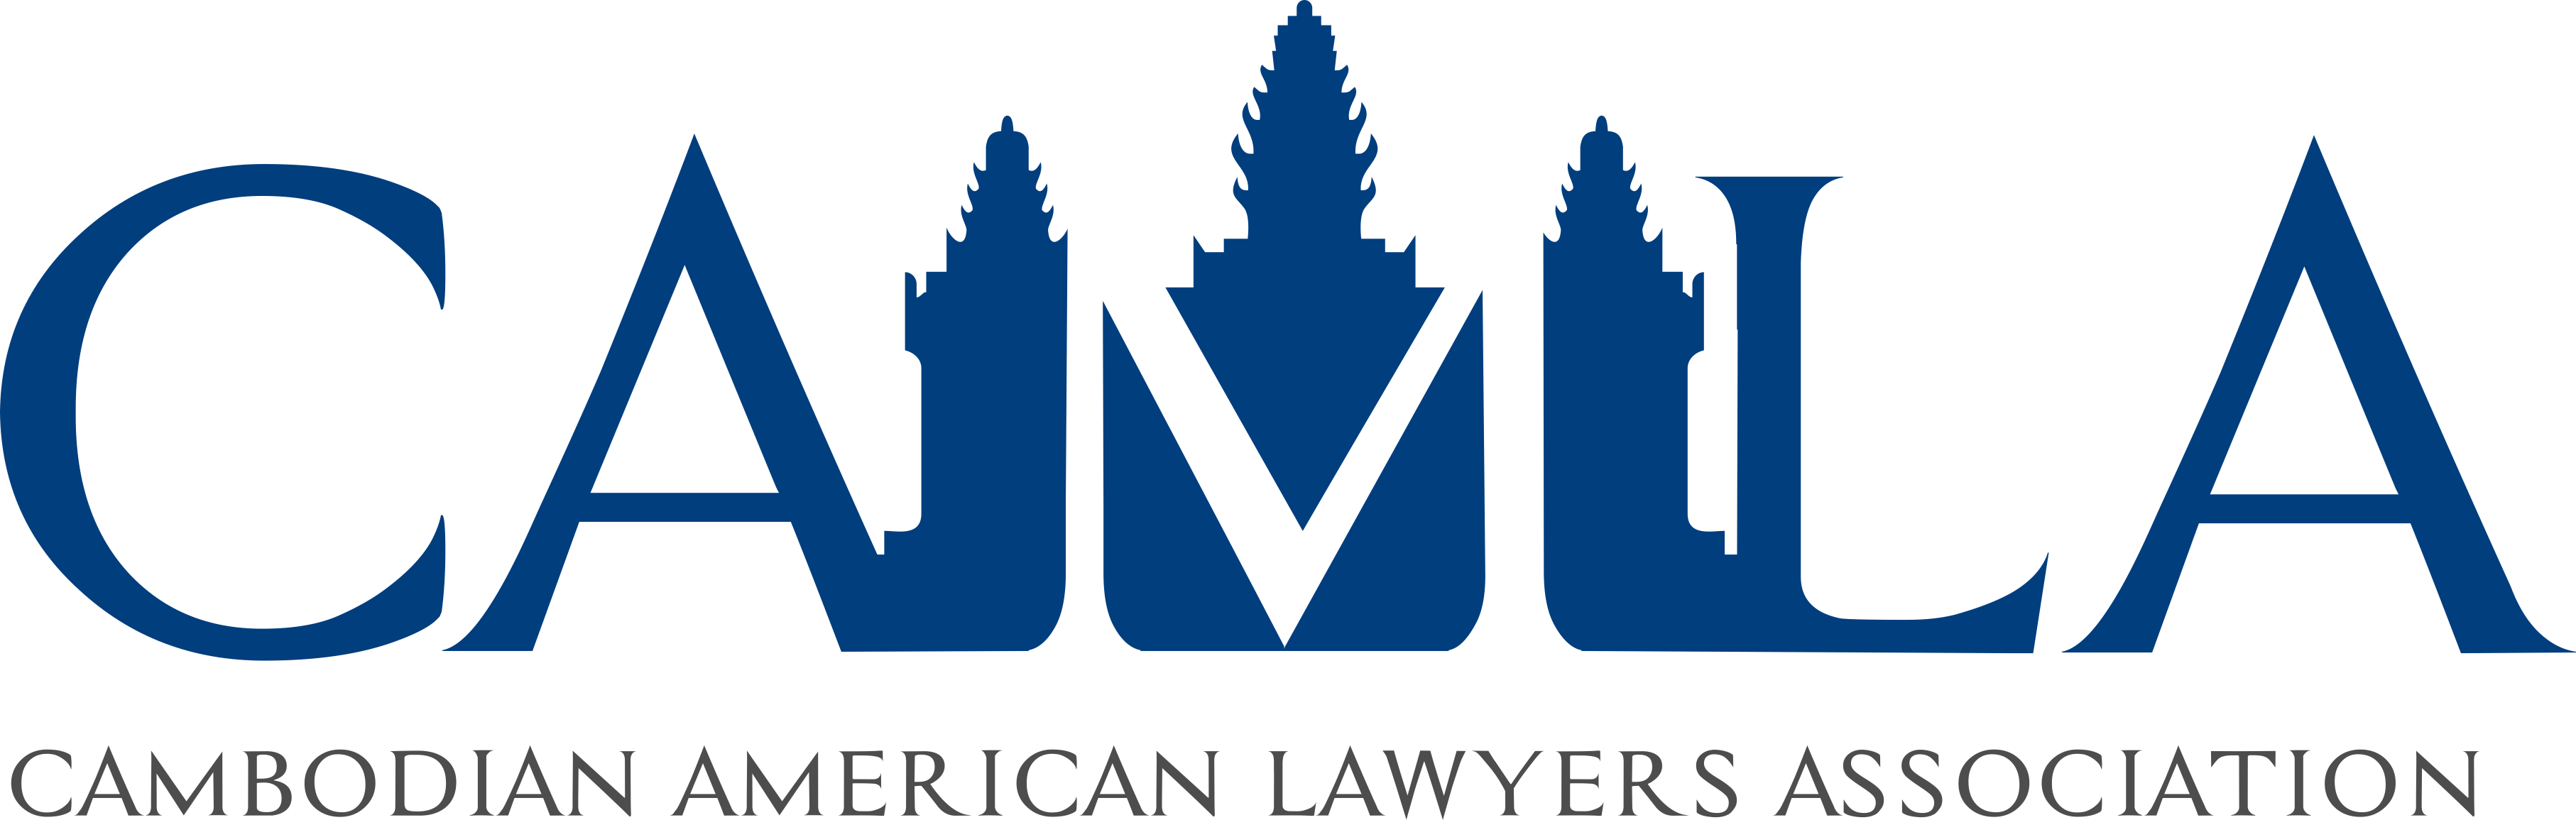 Cambodian American Lawyers Assoc needs sophisticated & clean logo w/ Angkor Wat & scales of justice